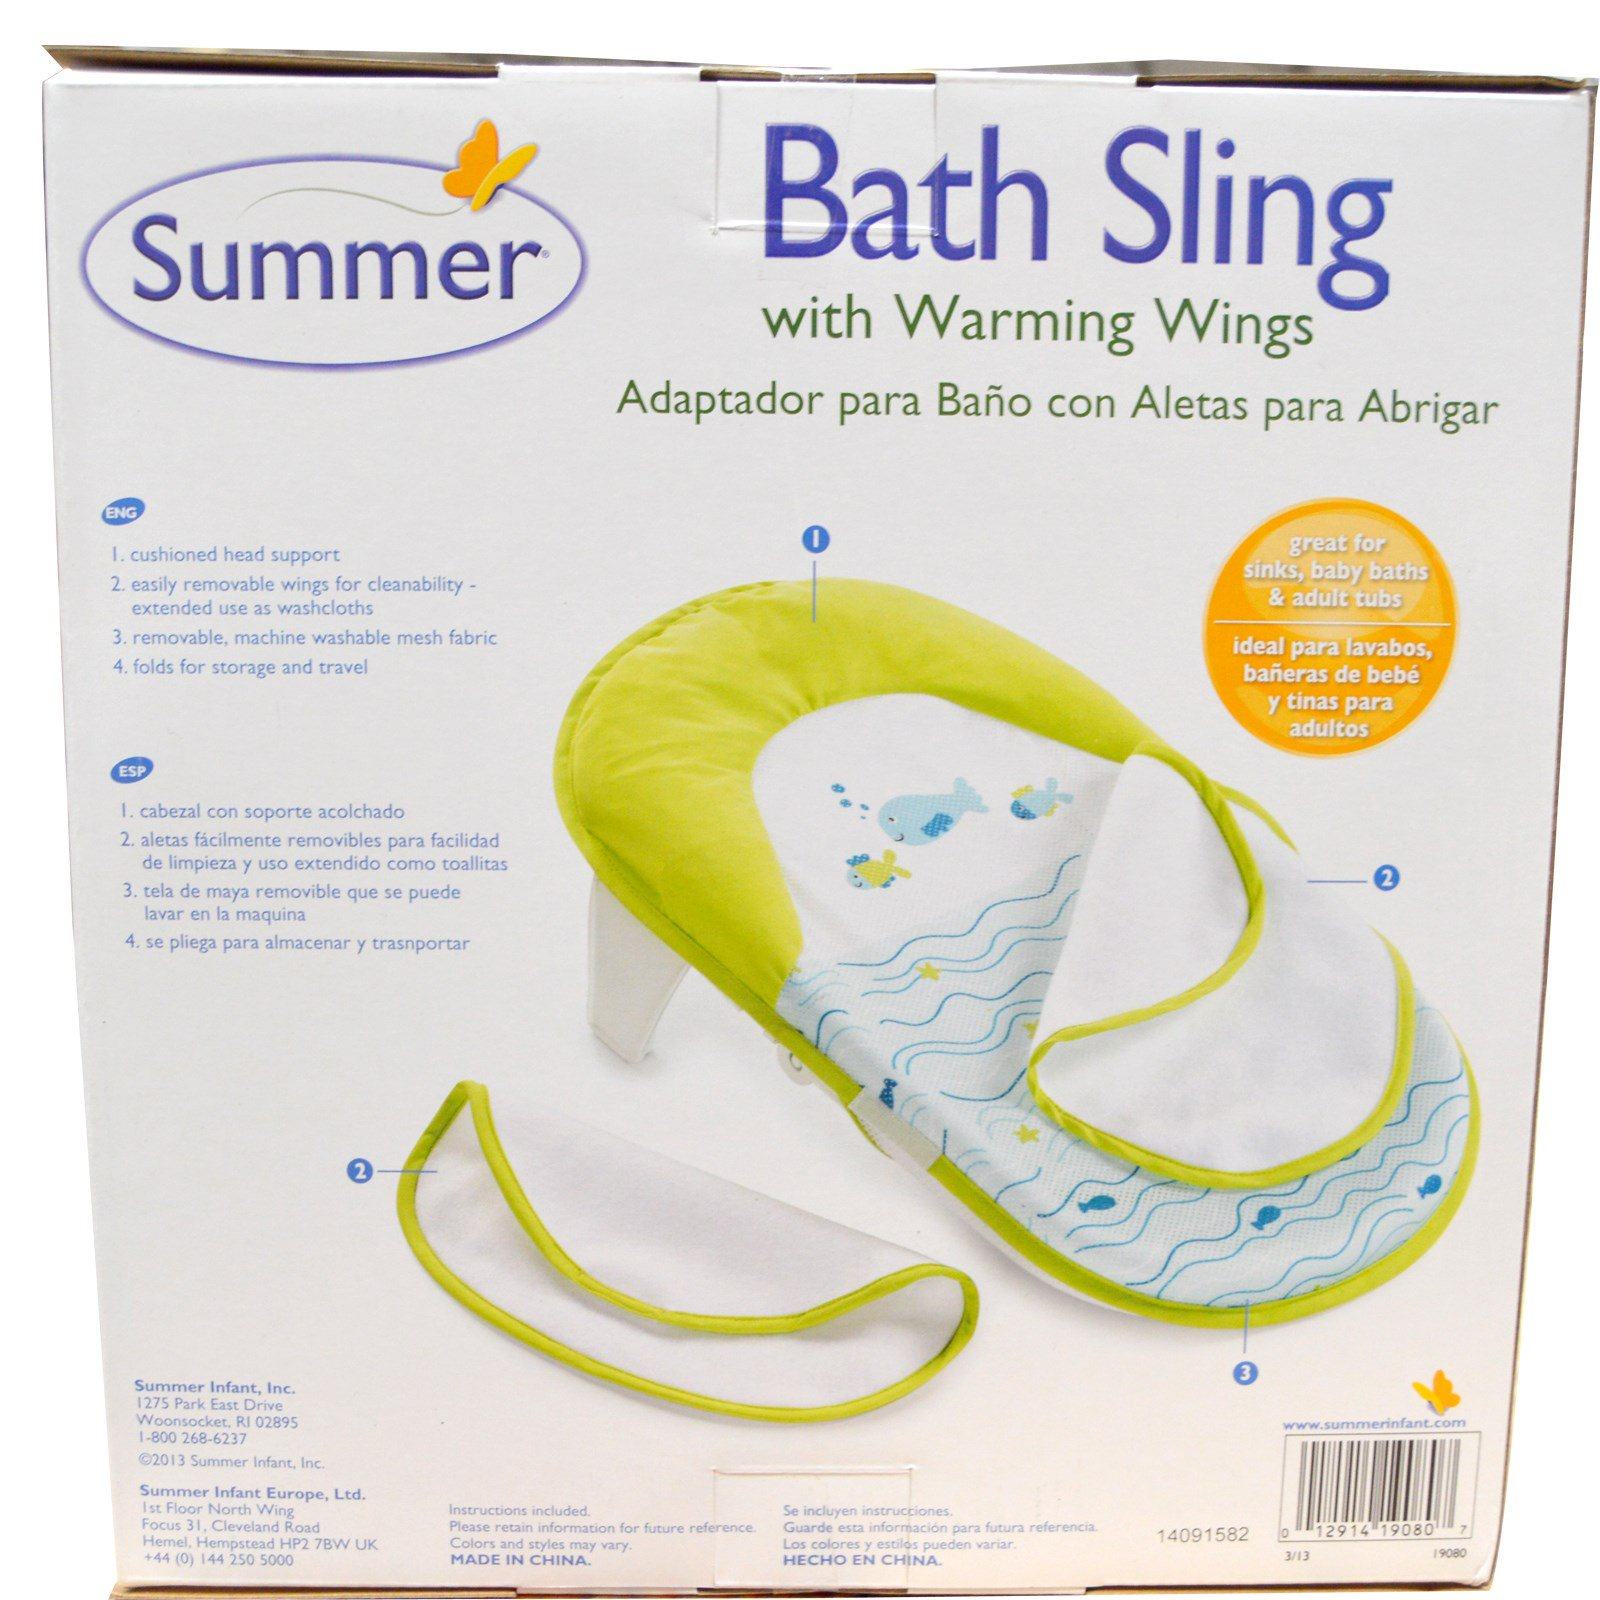 Summer Infant, Bath Sling with Warming Wings, 1 Set - iHerb.com